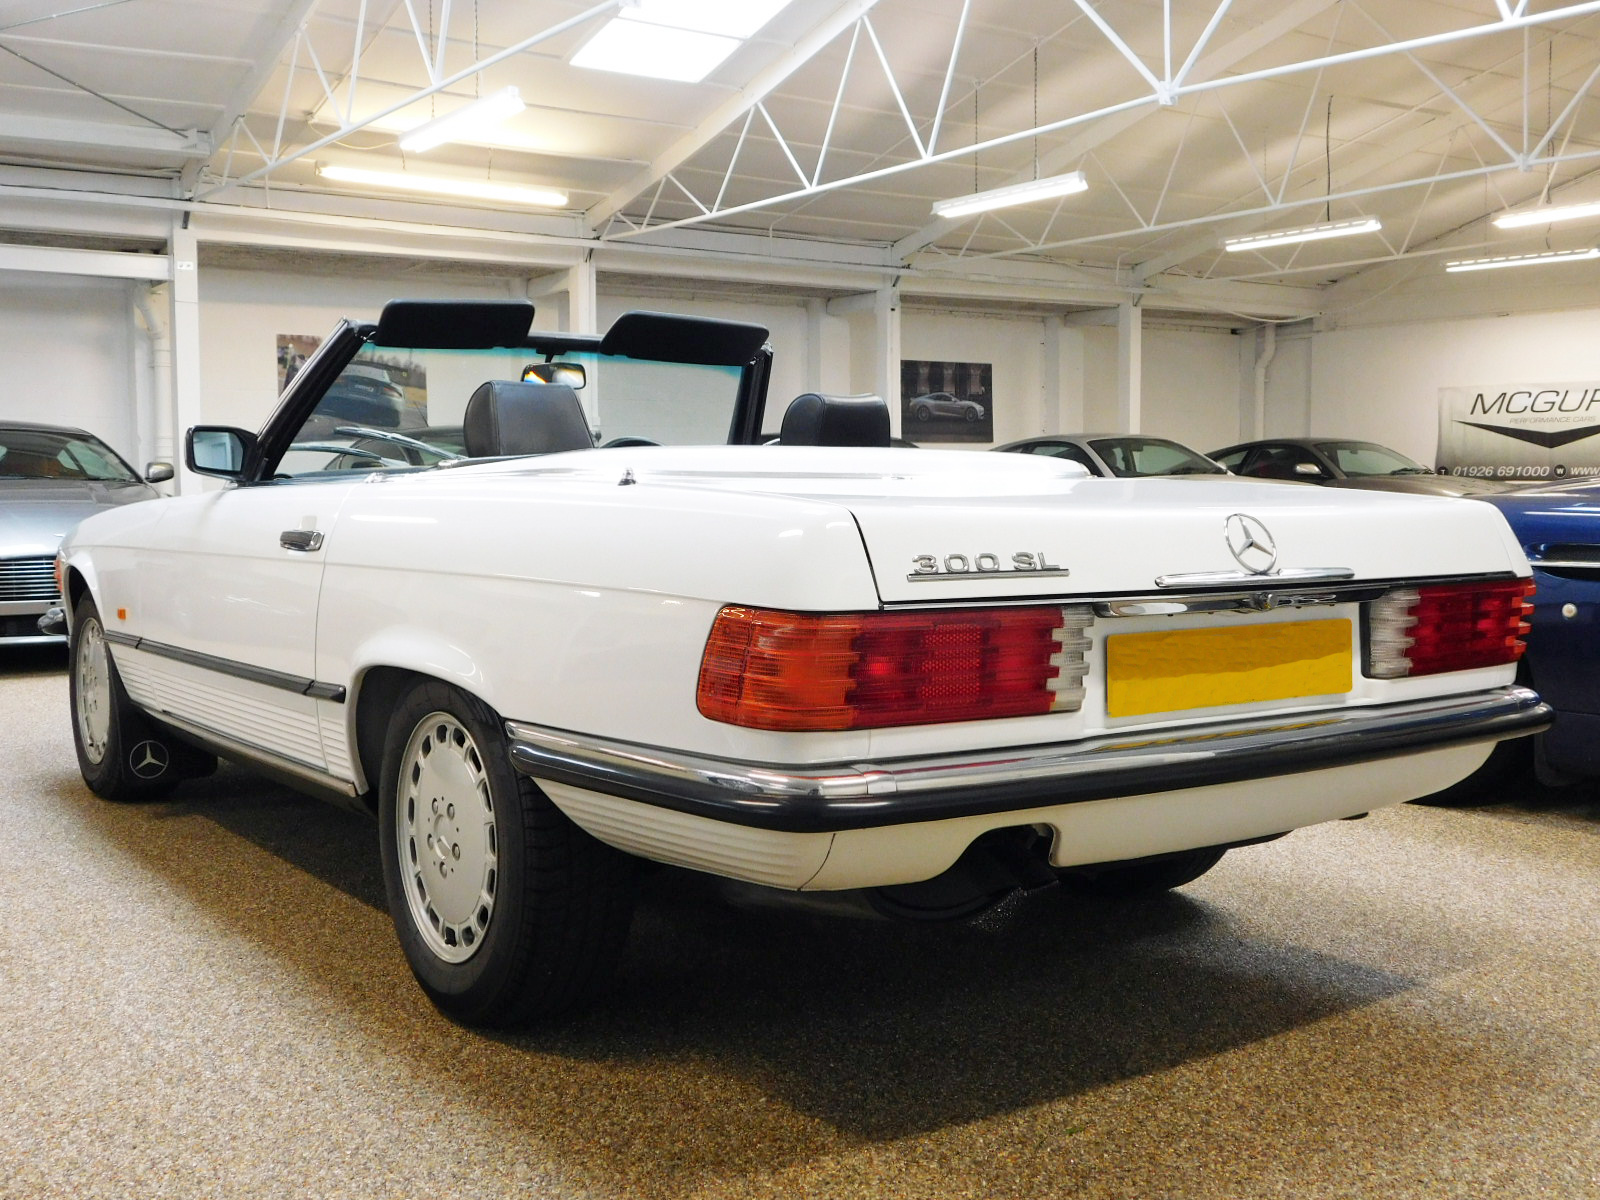 McGurk Performance Cars are pleased to offer this 300 SL. One Lady Owner From 1st August 1988 to 2016. Original Data Card And PDI Paperwork From 27-07-88. 18 Mercedes Benz Main Dealer Service Stamps Original Service Book. Last Serviced Mercedes Benz Stratford Upon Avon 2020. Every MOT From 3 Years Old to Date Documented As Follows: July 1991 16570 Miles. July 1992 20691 Miles. March 1993 21473 Miles. March 1994 24052 Miles. April 1995 25175 Miles. May 1996 26183 Miles. April 1997 27754 Miles. April 1998 28150 Miles. March 1999 28992 Miles. April 2000 29573 Miles. May 2001 30062 Miles. April 2002 30374 Miles. March 2003 30739 Miles. July 2004 31614 Miles. August 2005 32099 Miles. July 2006 32494 Miles. July 2007 32729 Miles. July 2008 32891 Miles. July 2009 33040 Miles. July 2010 33104 Miles. July 2011 33248 Miles. July 2012 33361 Miles. July 2013 33488 Miles. July 2014 33523 Miles. August 2015 33558 Miles. August 2016 34343 Miles. August 2017 34502 Miles August 2018 34560 Miles Only 2 Mot Advisories To Date As Follows: Slightly Blocked Washer Jets. Slight Exhaust Blow, Renewed By Mercedes Benz. Original Tool Kit And Hand Books Including Leather Wallet. X4 Michelin Factory Tyres. Full Black leather Interior. Rear Seating. Original Fire Extinguisher. Spare Wheel & Tyre Unused. Original Number Plates From 1988 Macclesfield Mercedes Benz. Electric Windows. Front Fog Lights. Original Black Mohair Soft Top. White Factory Fitted Hard Top. Immaculate Unmarked Condition Throughout. Very Rare To Source In This Immaculate Unrestored Condition. Original Factory Paintwork And Wax Oil. A Perfect Example For Increasing Investment Potential Or Show Vehicle.